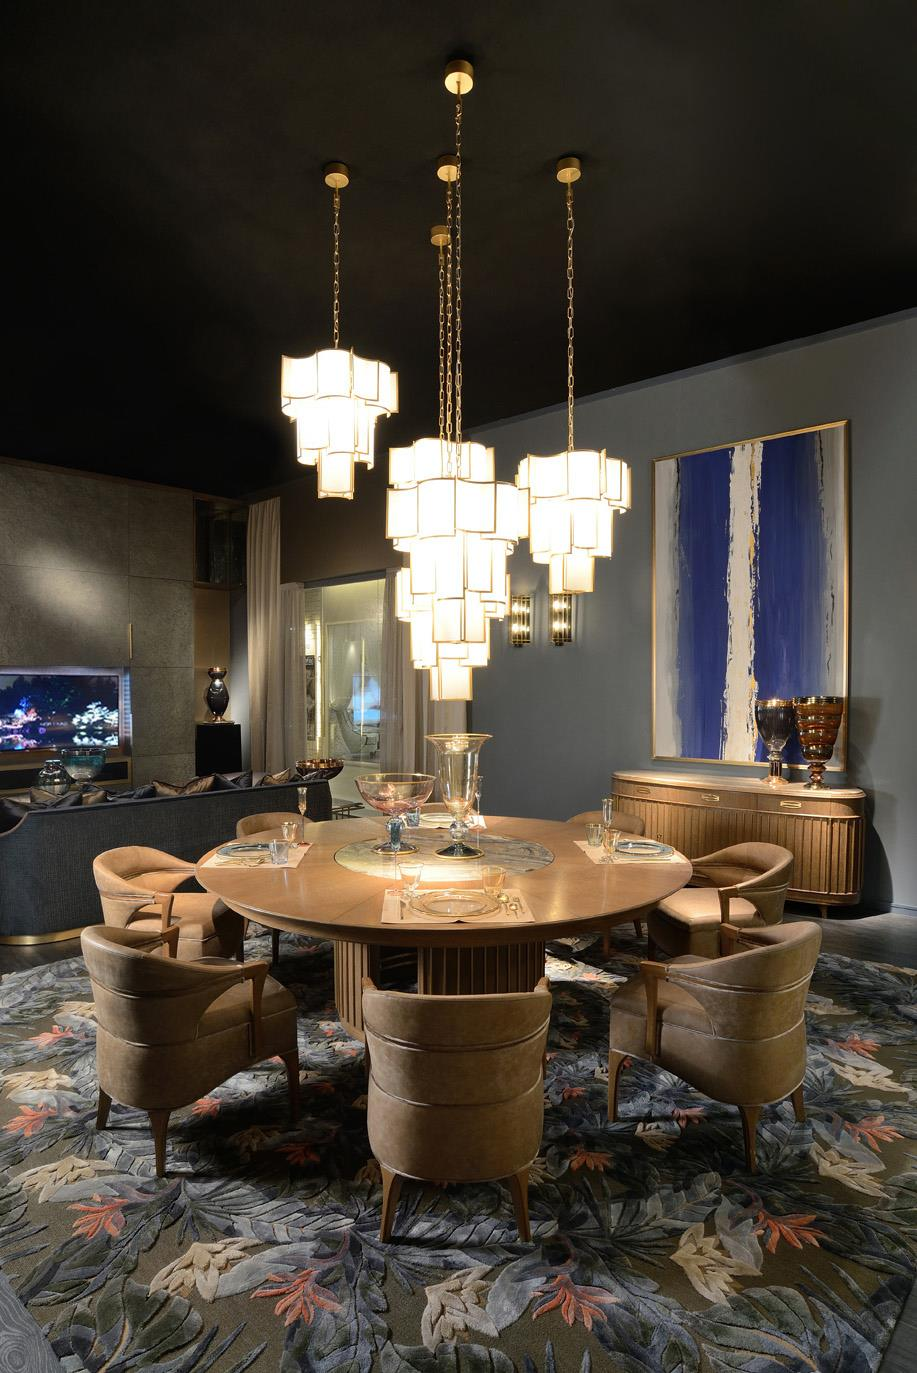 Shade chandelier by Officina Luce at Salone del Mobile - Masha Shapiro Agency UK.jpg